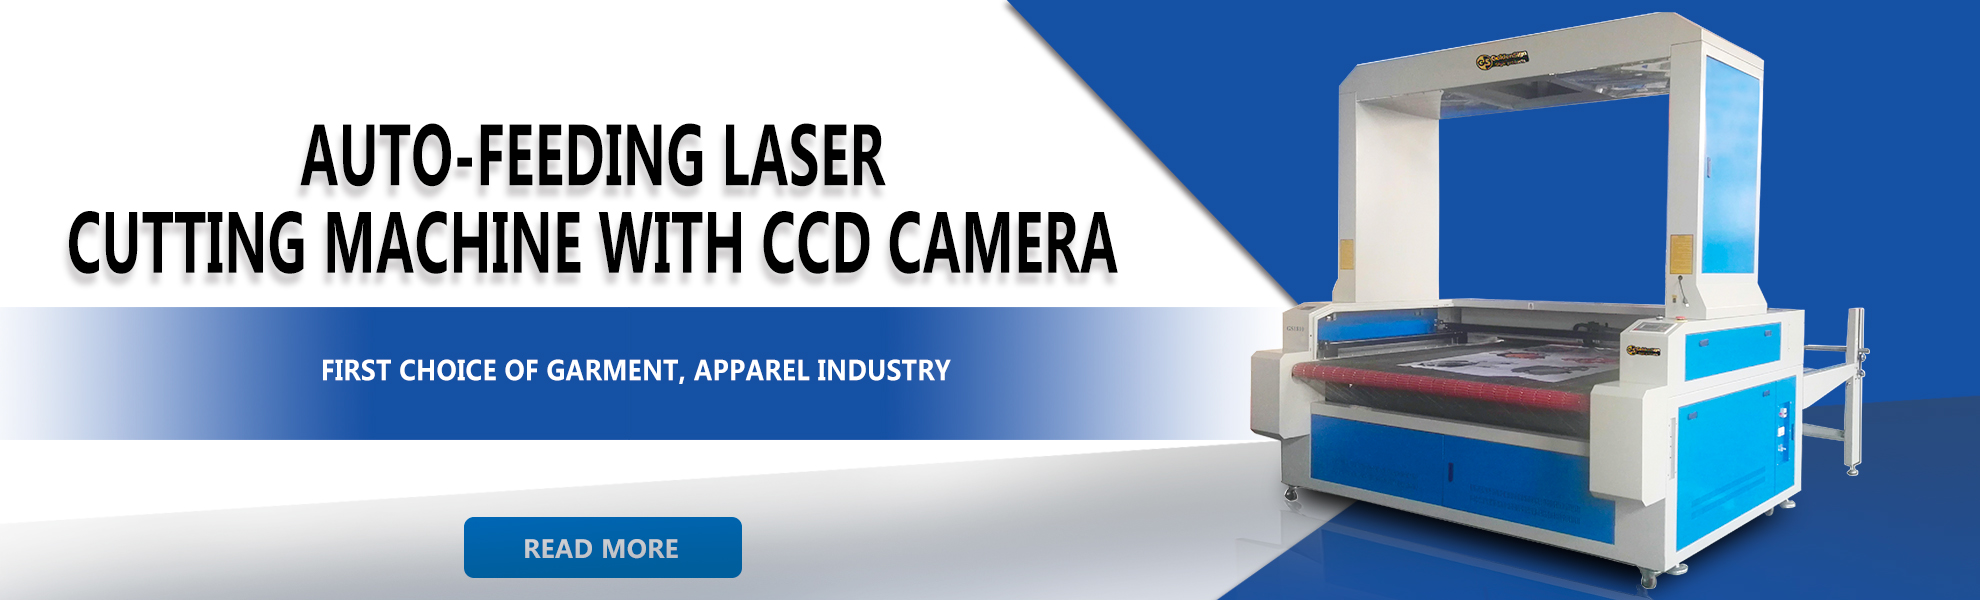 GS CCD Camera Laser Cutting Machine